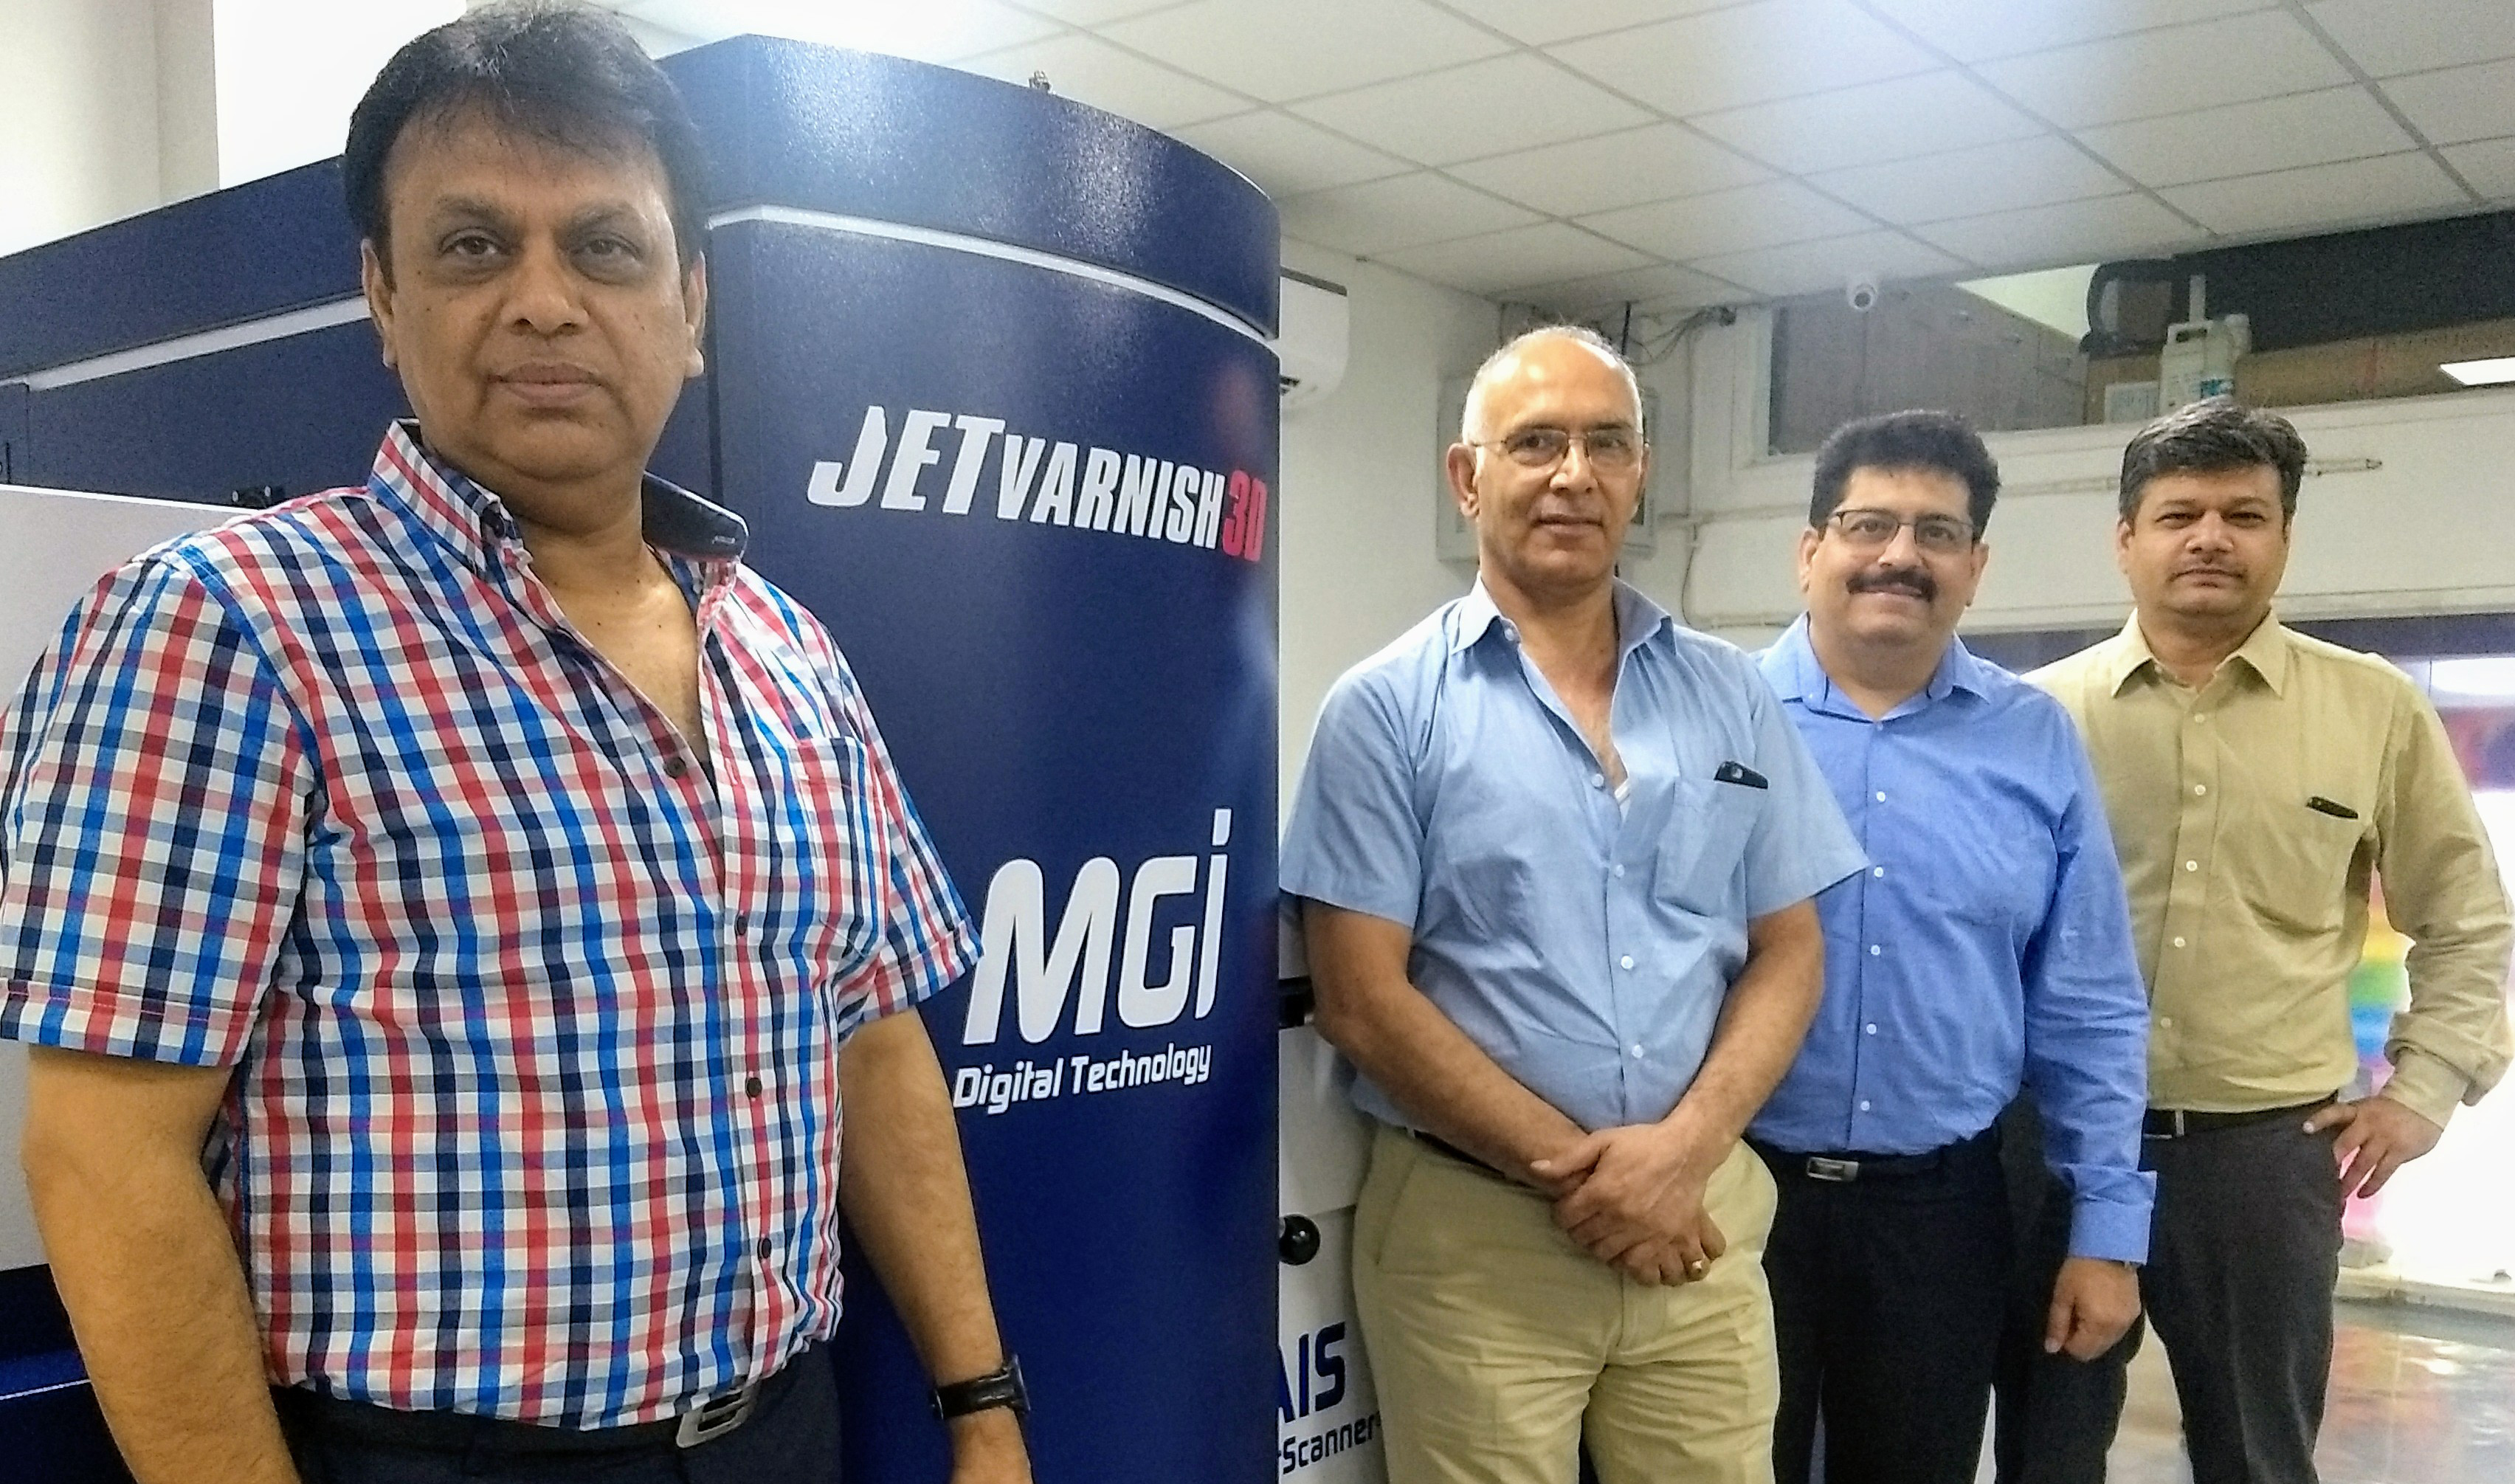 (from left) Kamal Malik and Ravinder Kumar of Printology Xperts, and Rajeev Ahuja and Manish Gupta of Konica Minolta